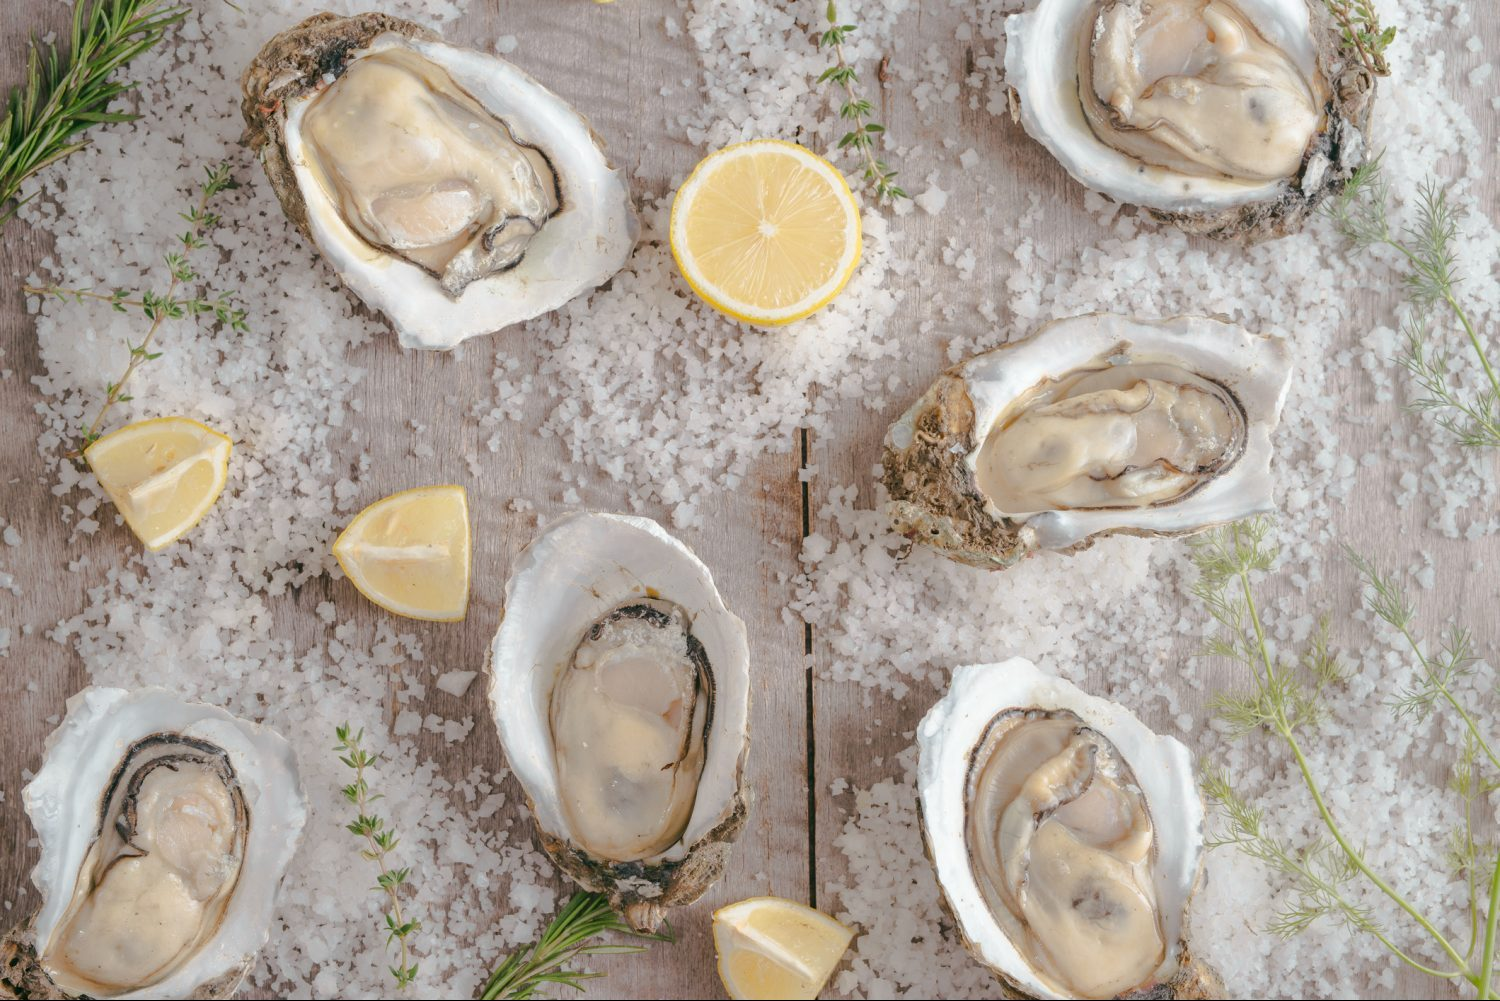 Oysters are one of the most popular items in Charleston.